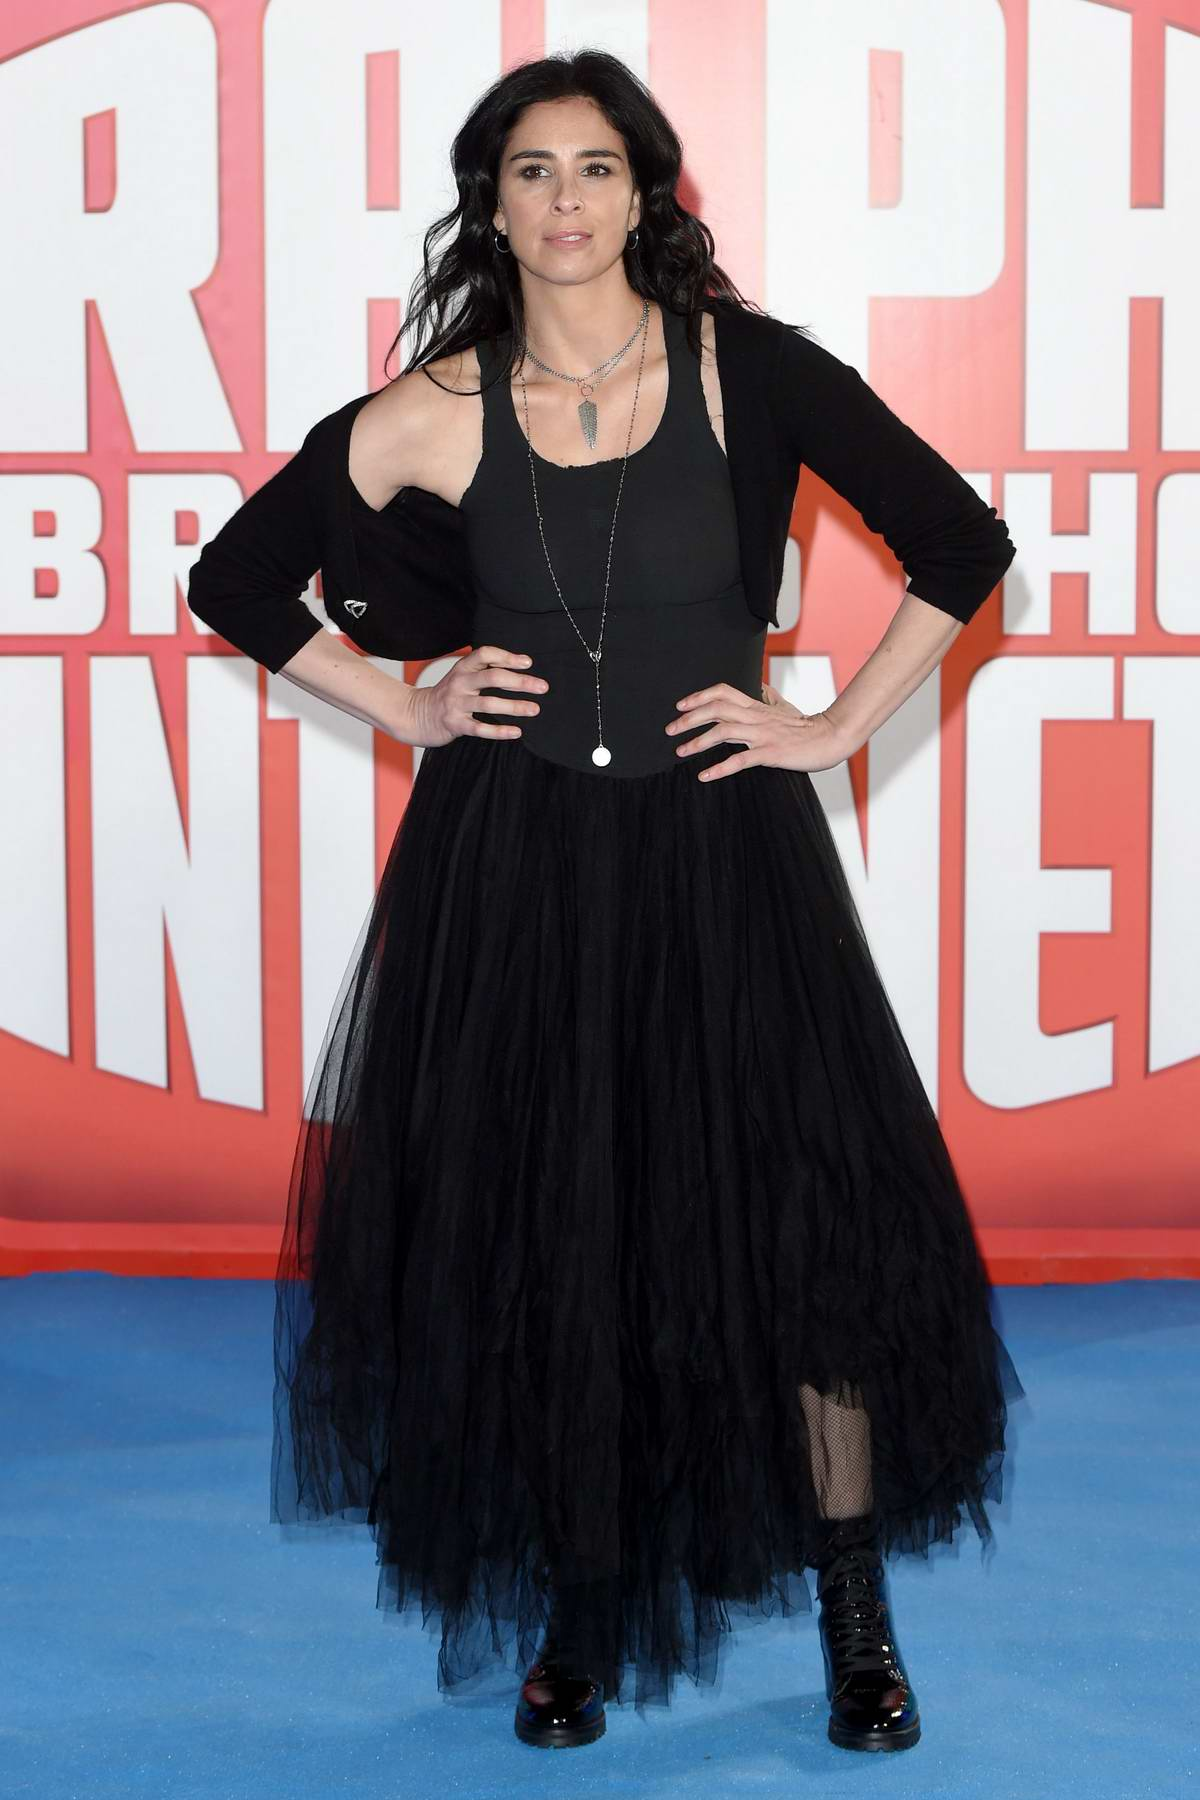 Sarah Silverman attends Premiere of 'Ralph Breaks The Internet' at Curzon Mayfair in London, UK